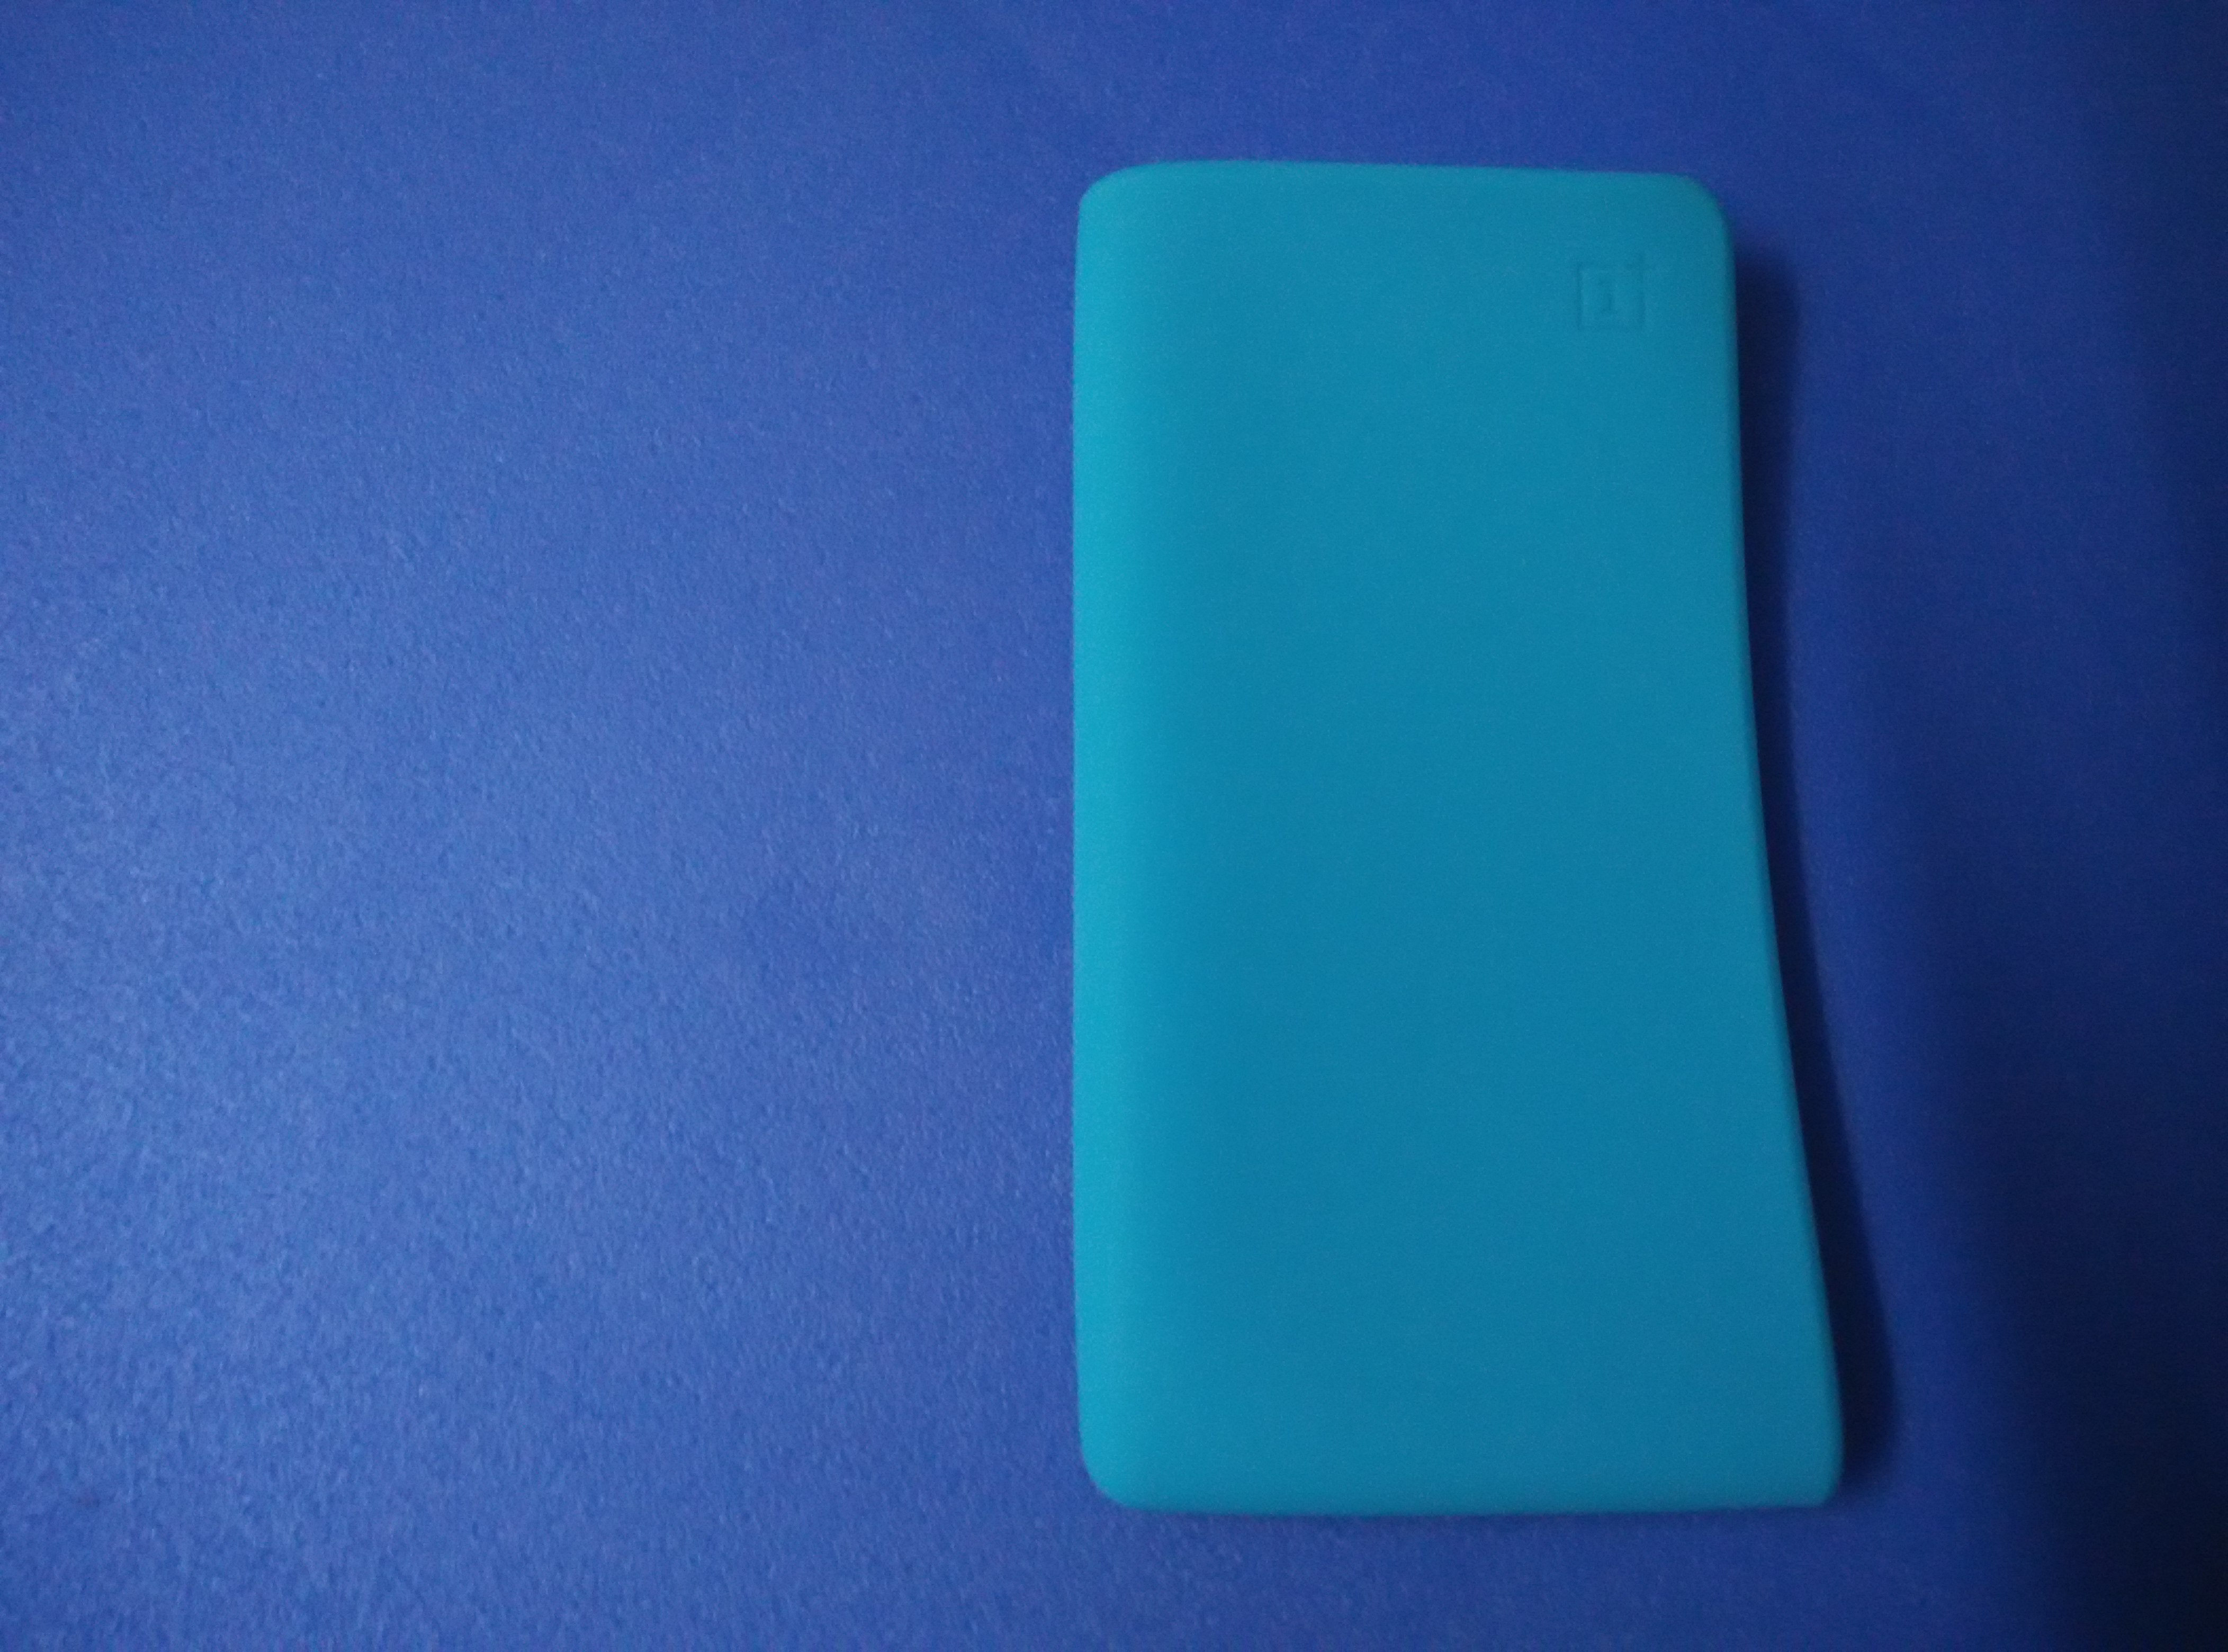 promo code 83f8e ff9ef OnePlus Power Bank Silicone Case Review: Bang for the buck designed ...